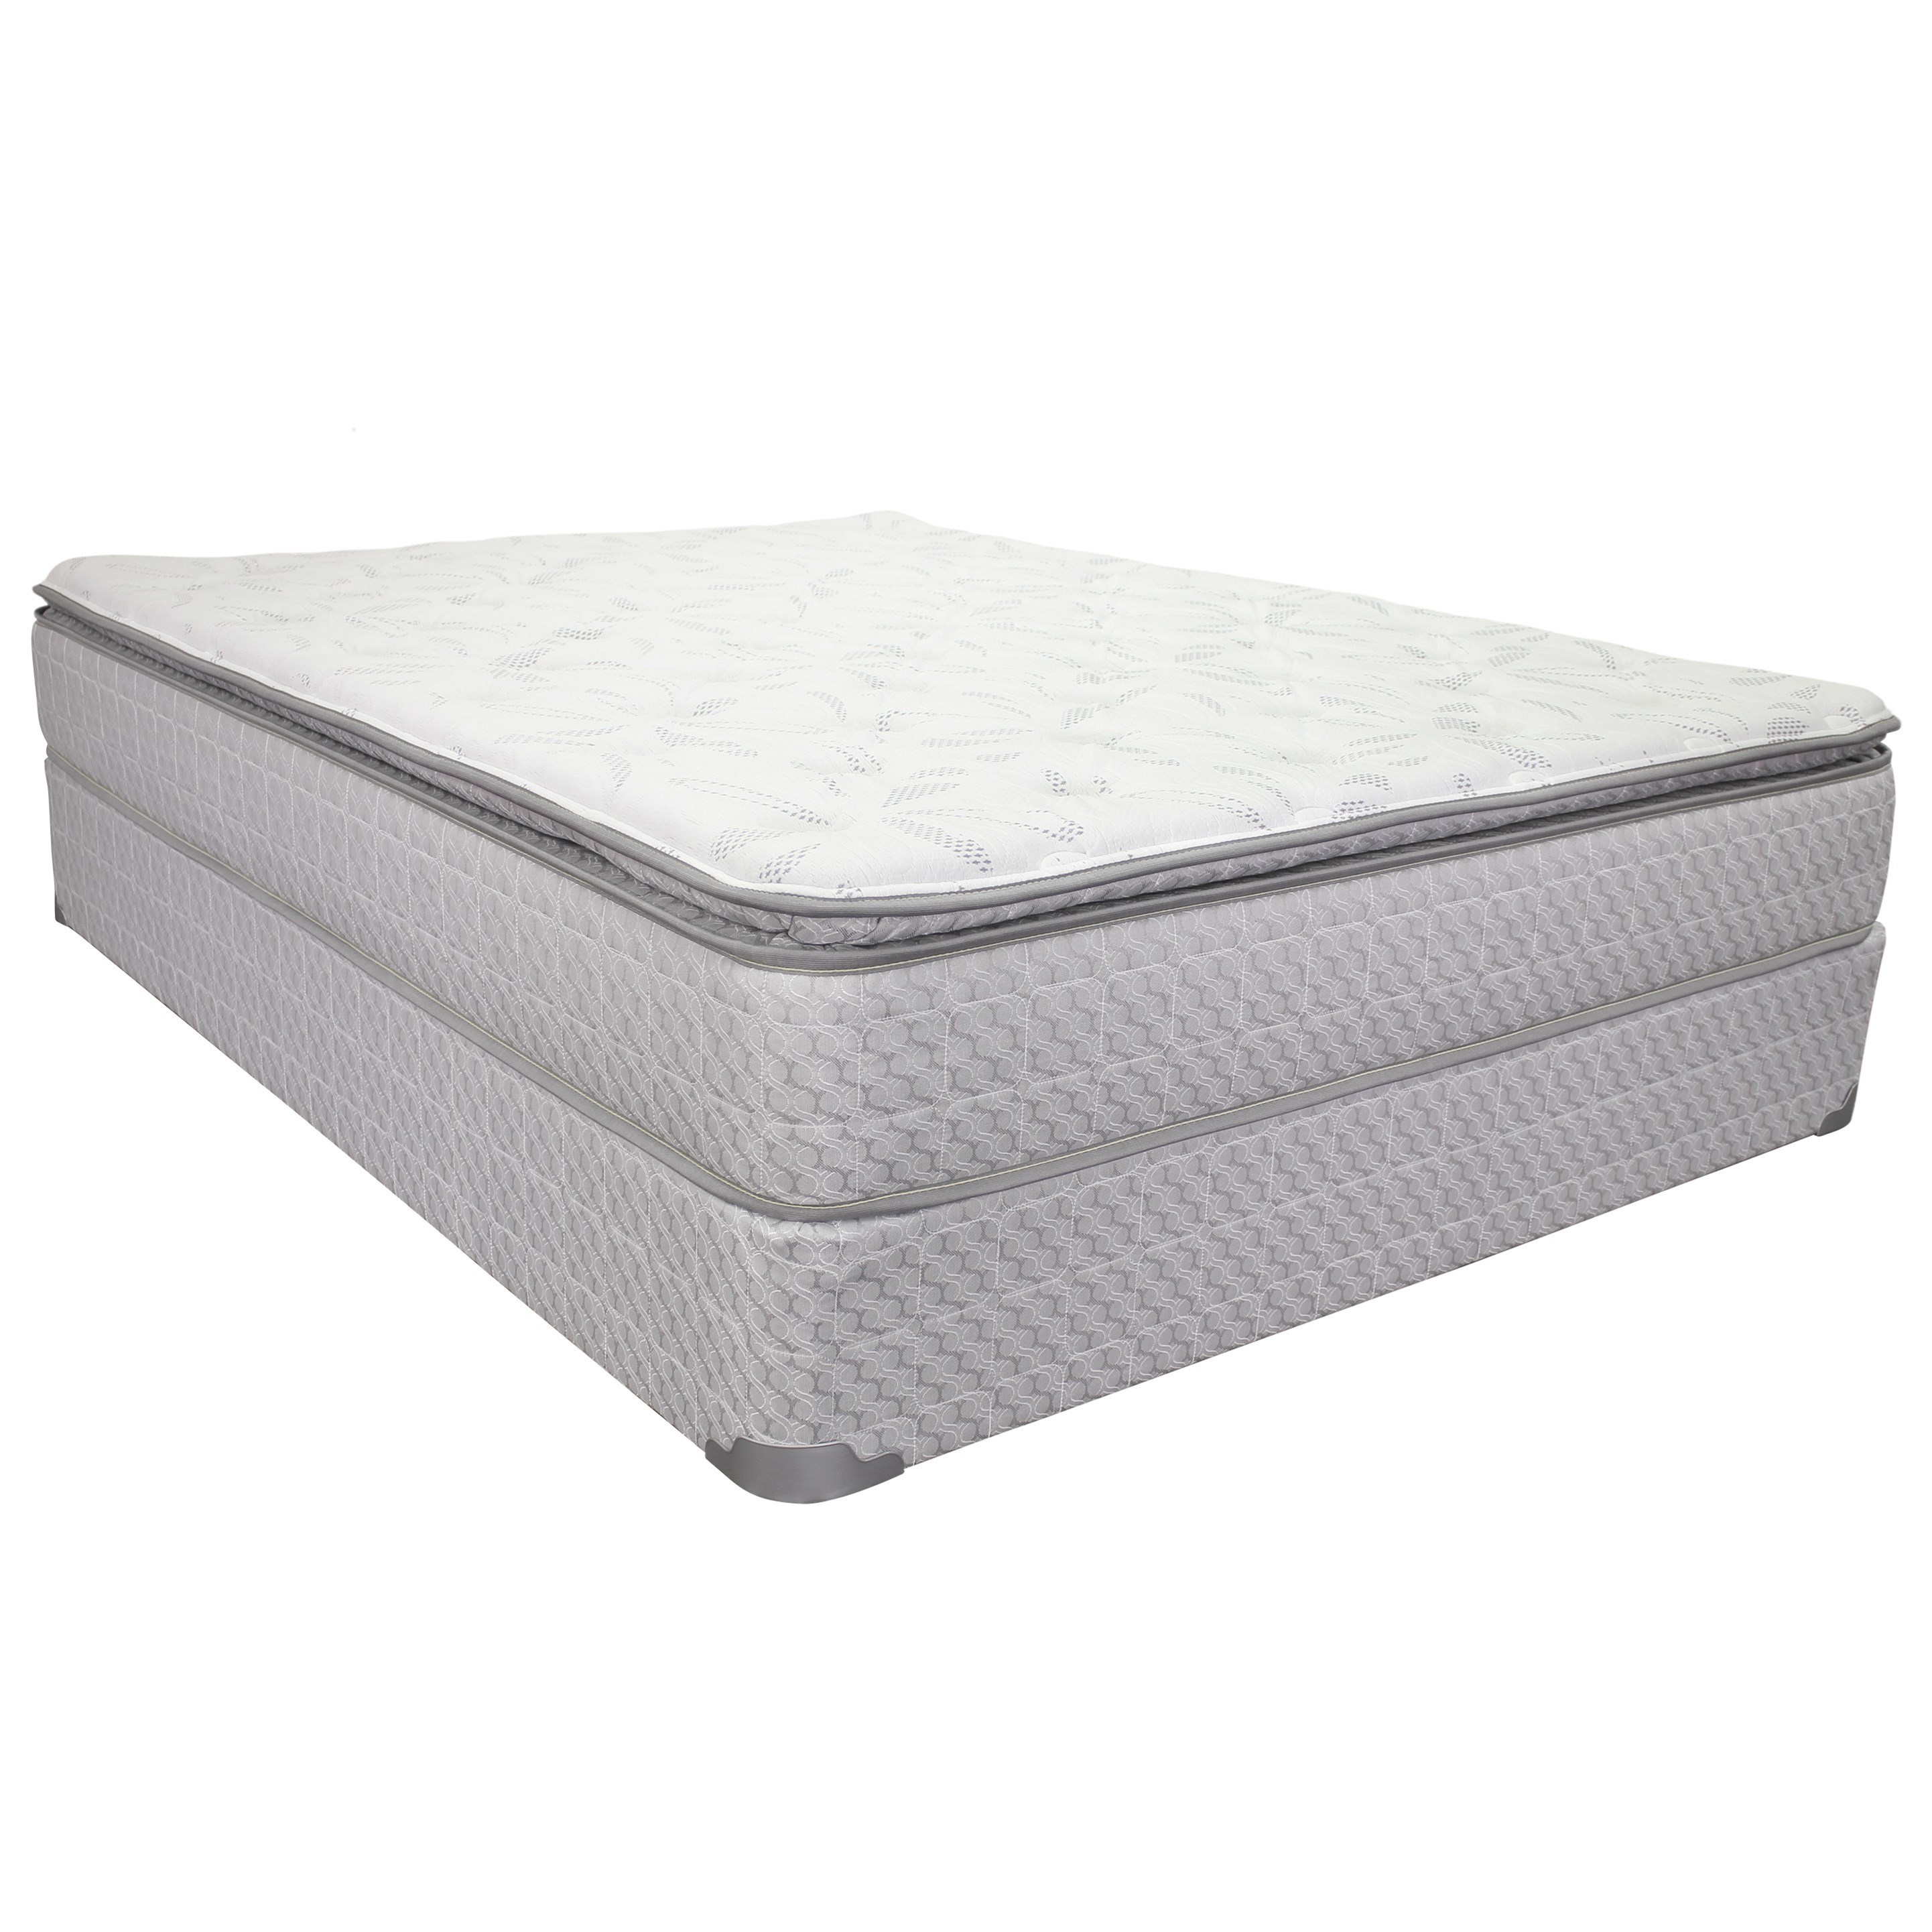 "Twin 10 1/2"" Pillow Top Mattress Set"